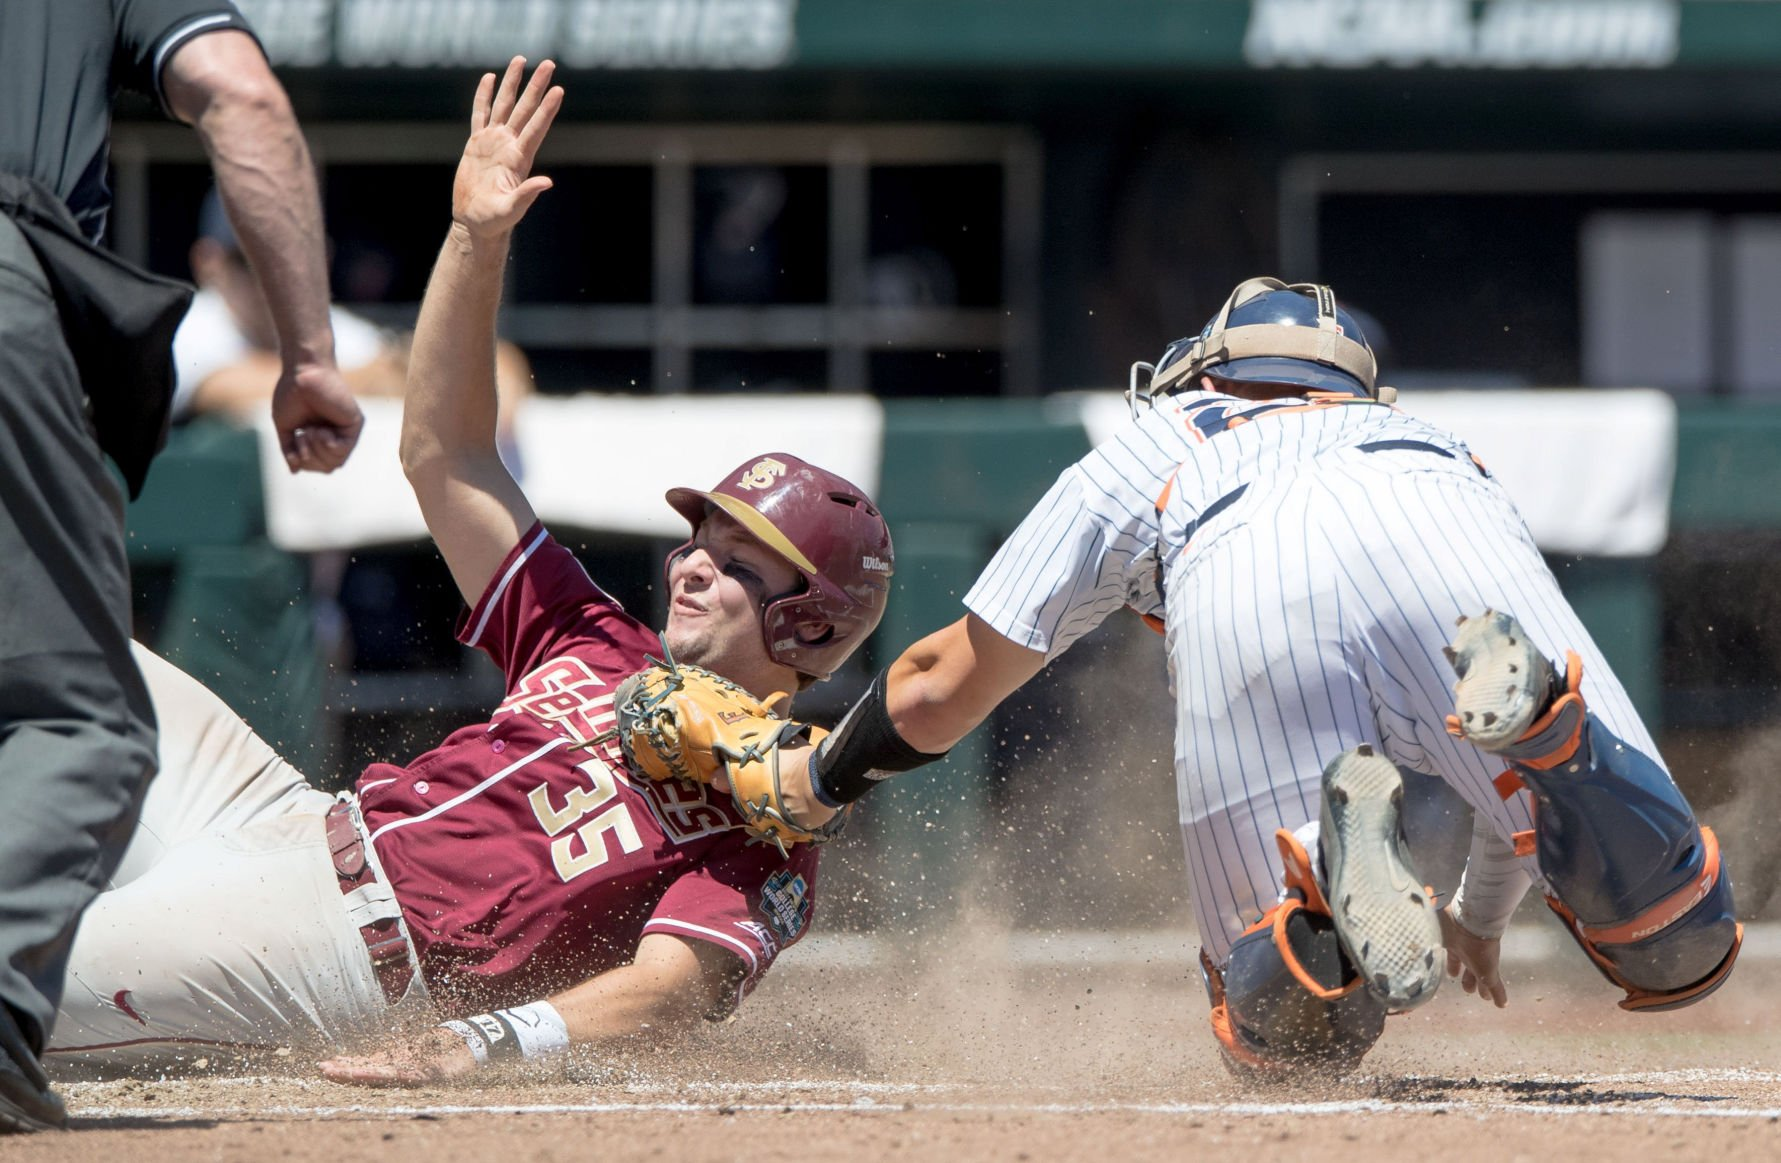 CWS: Florida State rallies to beat Cal State Fullerton in elimination game